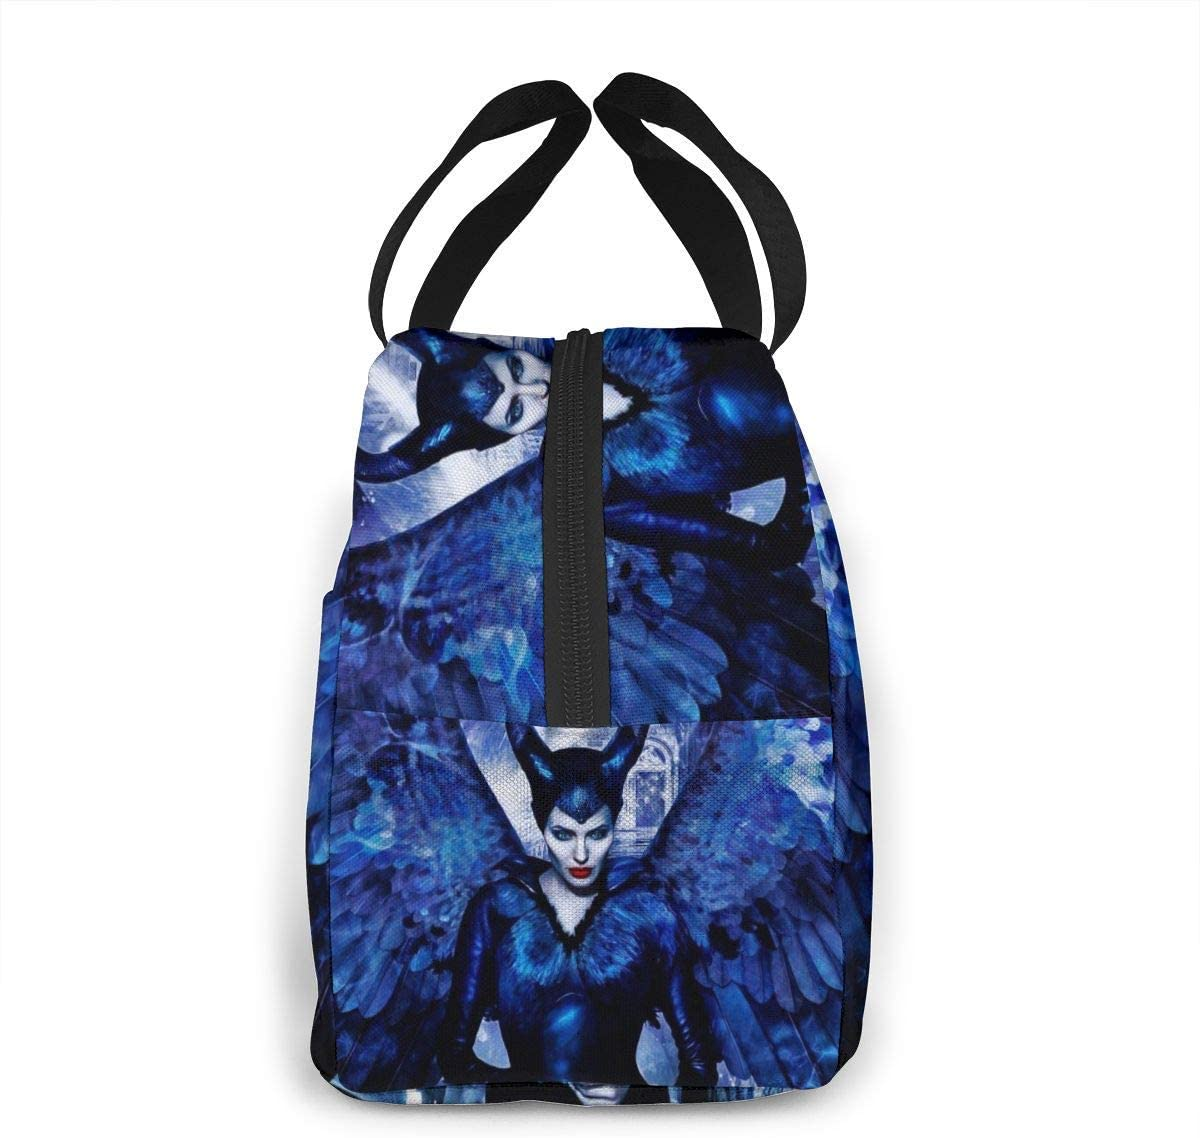 dfjdfjdjf Lunch-Taschen Maleficent Reusable Insulated Lunch Bag Camping Bag Portable Tote Box Meal Prep for Work School Picnic Or Travel